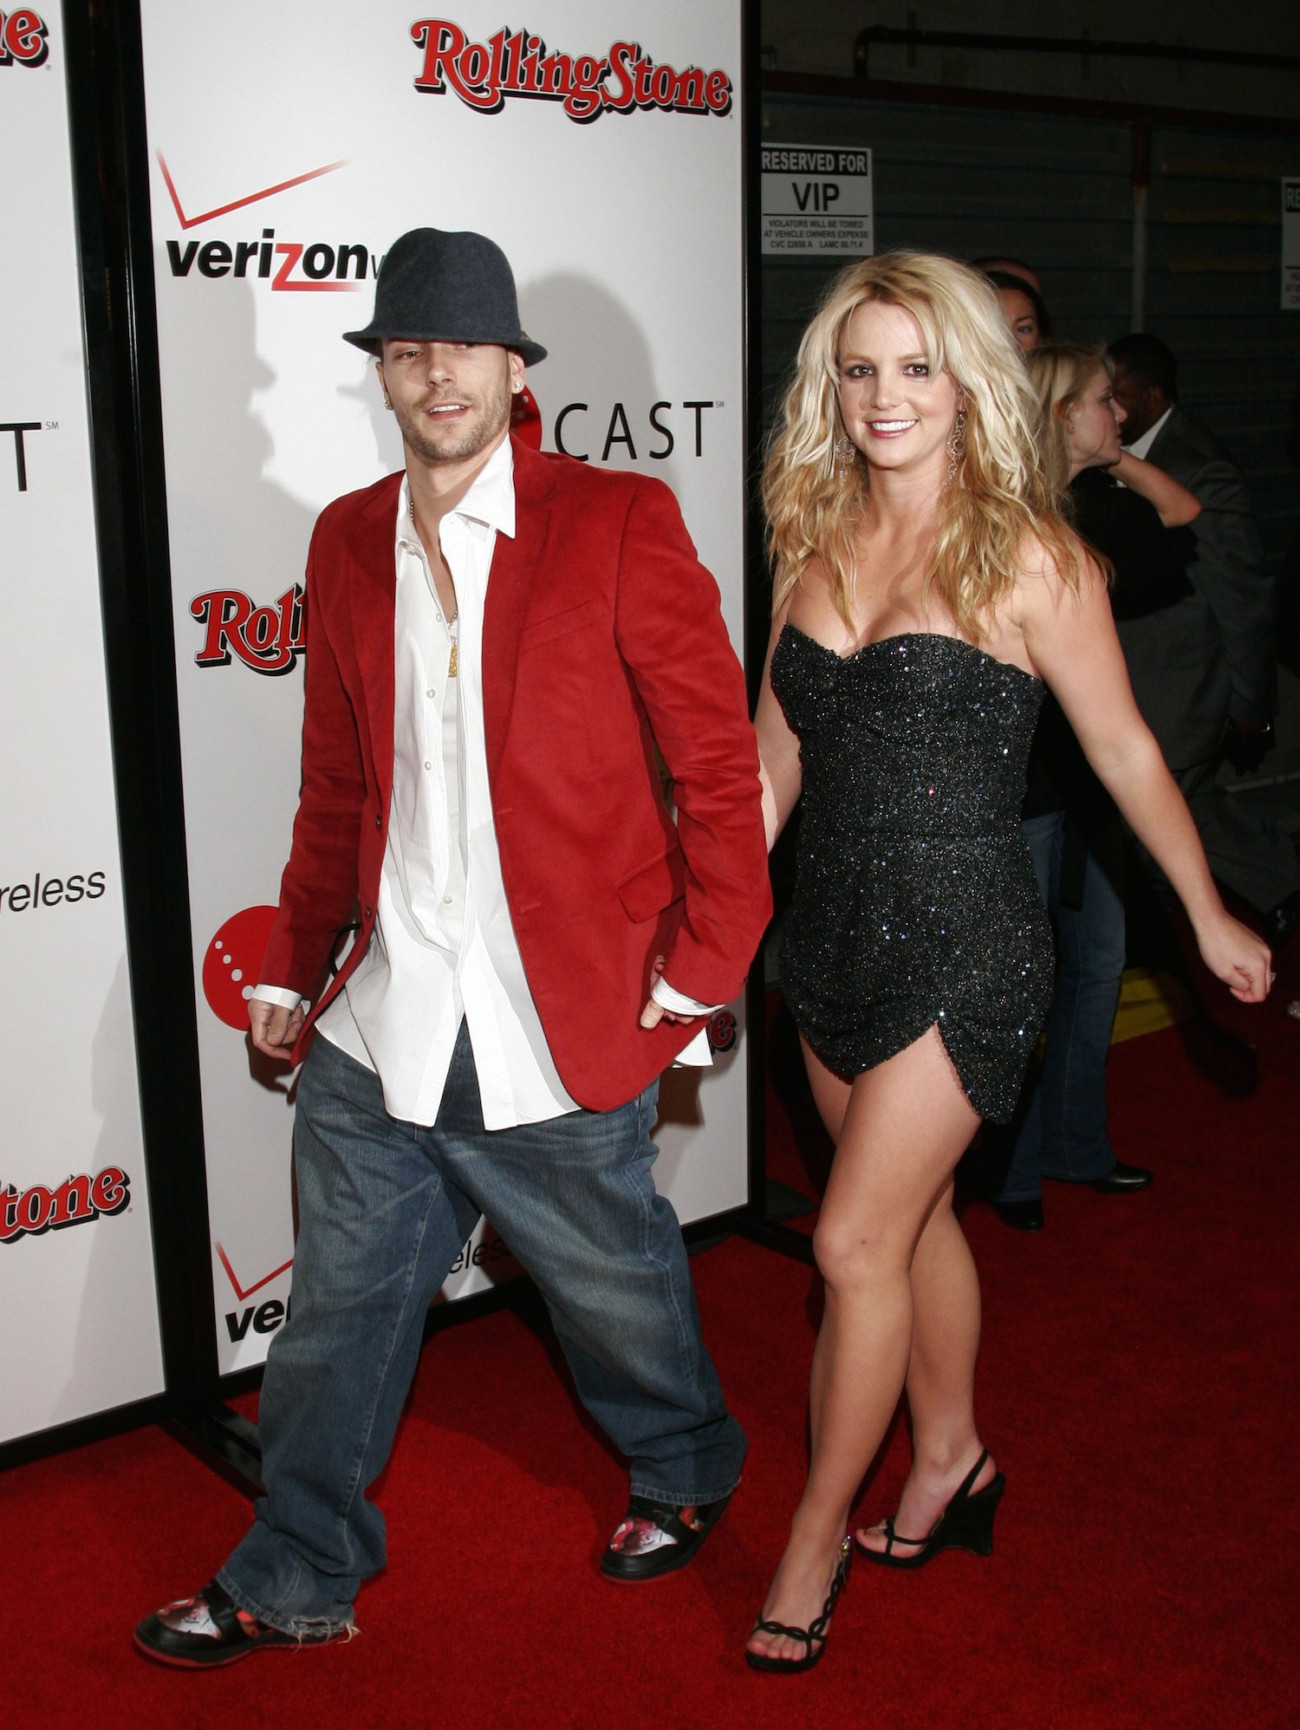 HOLLYWOOD - FEBRUARY 06:  Musicians Britney Spears and Kevin Federline arrive at the 2006 Grammy Nominees party with Kanye West, hosted By Verizon Wireless and Rolling Stone Magazine at the Avalon Hollywood, on February 6, 2005 in Hollywood, California.  (Photo by Matthew Simmons/Getty Images for Rolling Stone)